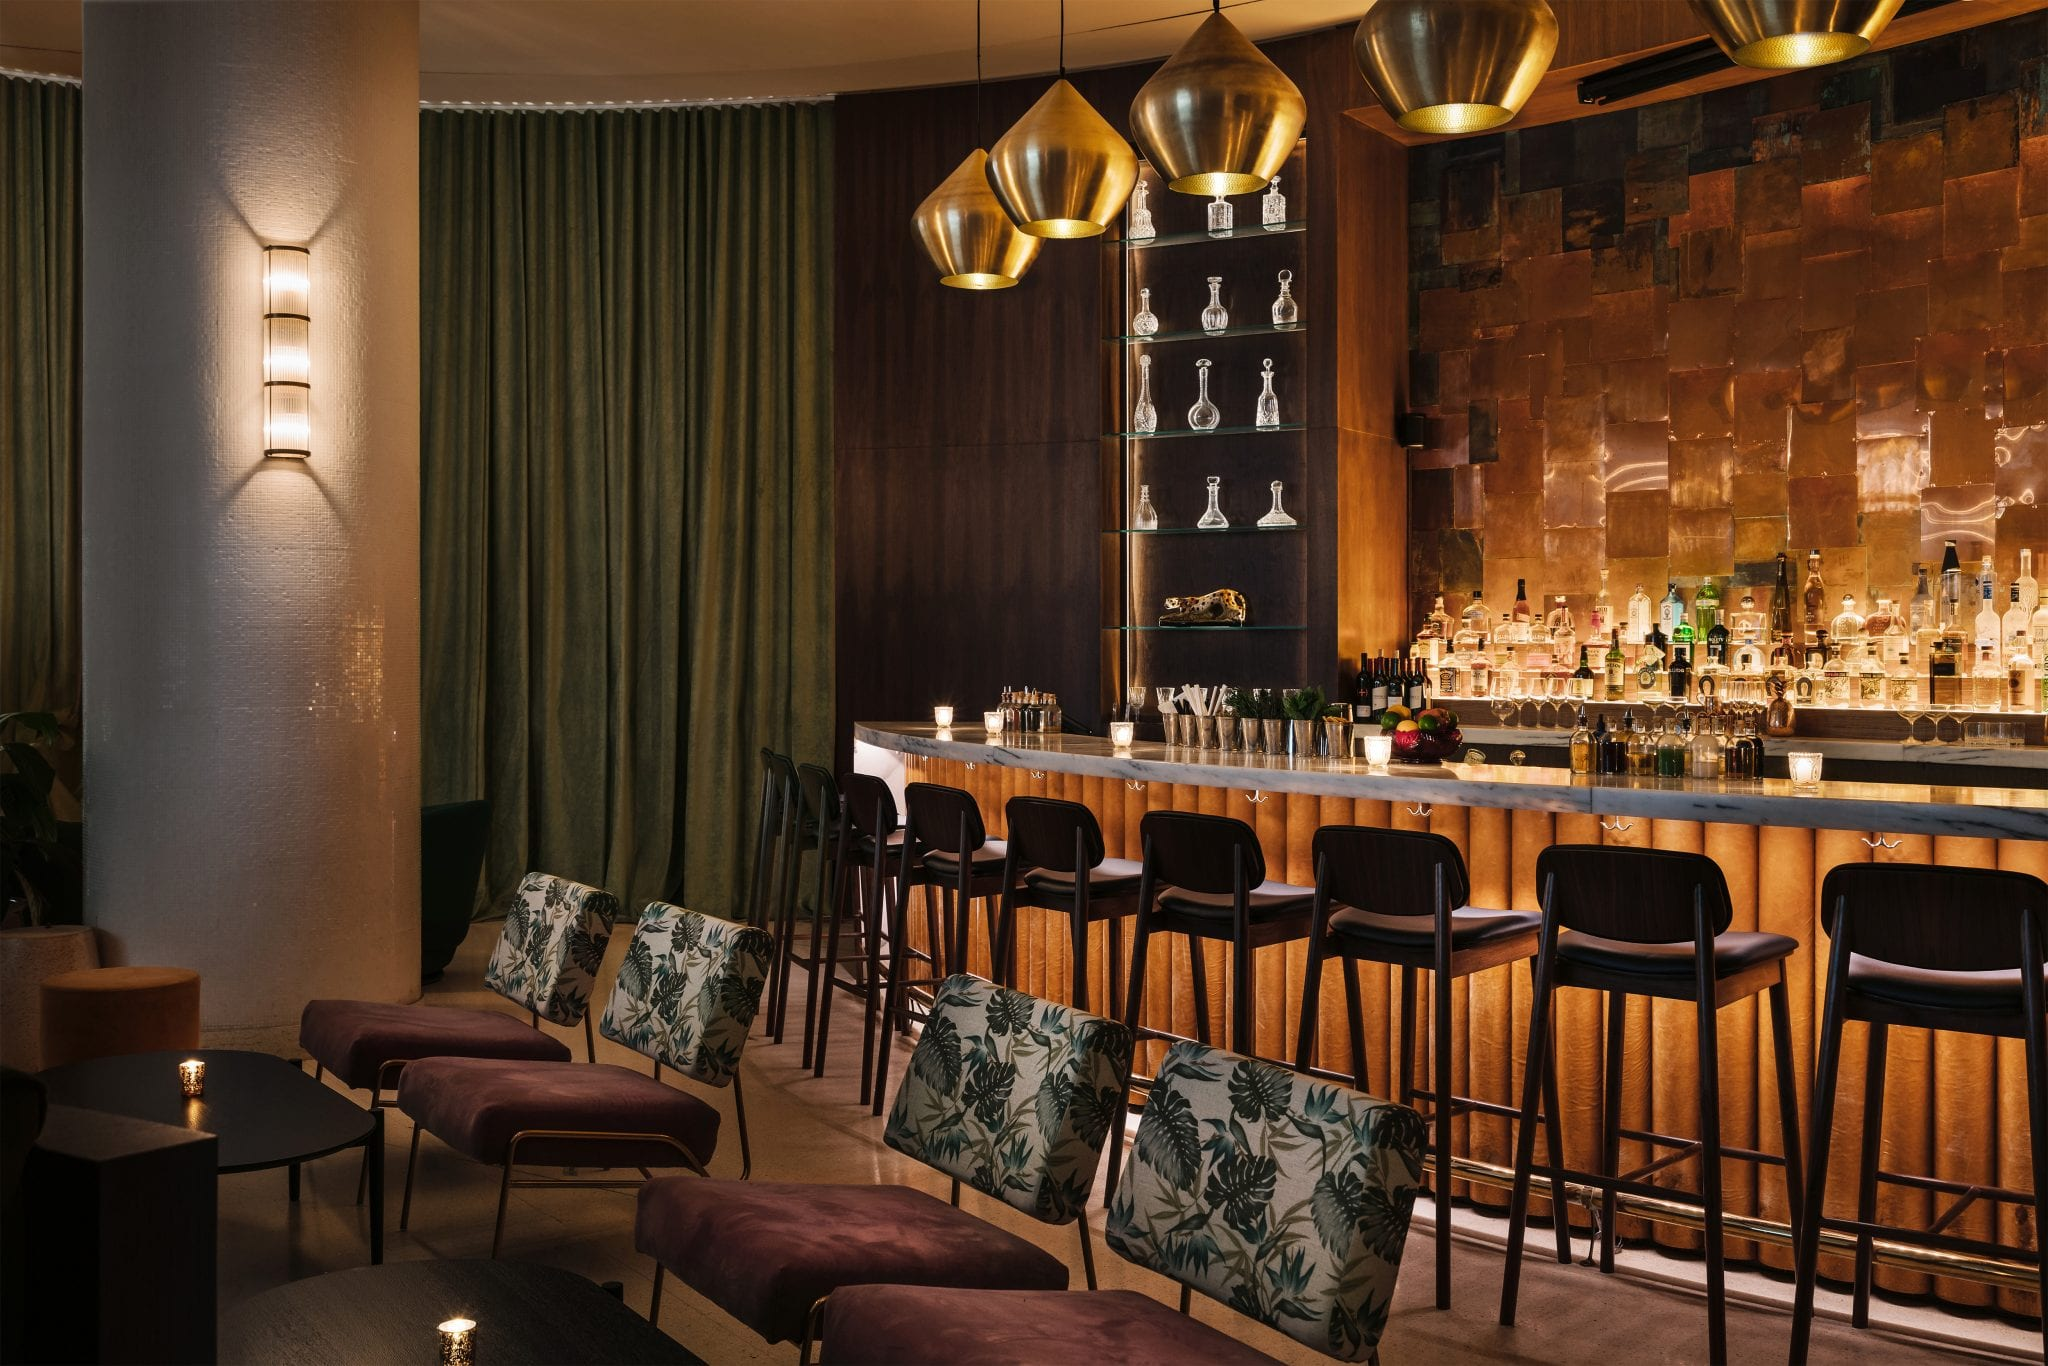 semi circular bar with high chairs and a green curtain and additional seating next to bar with patterned chairs